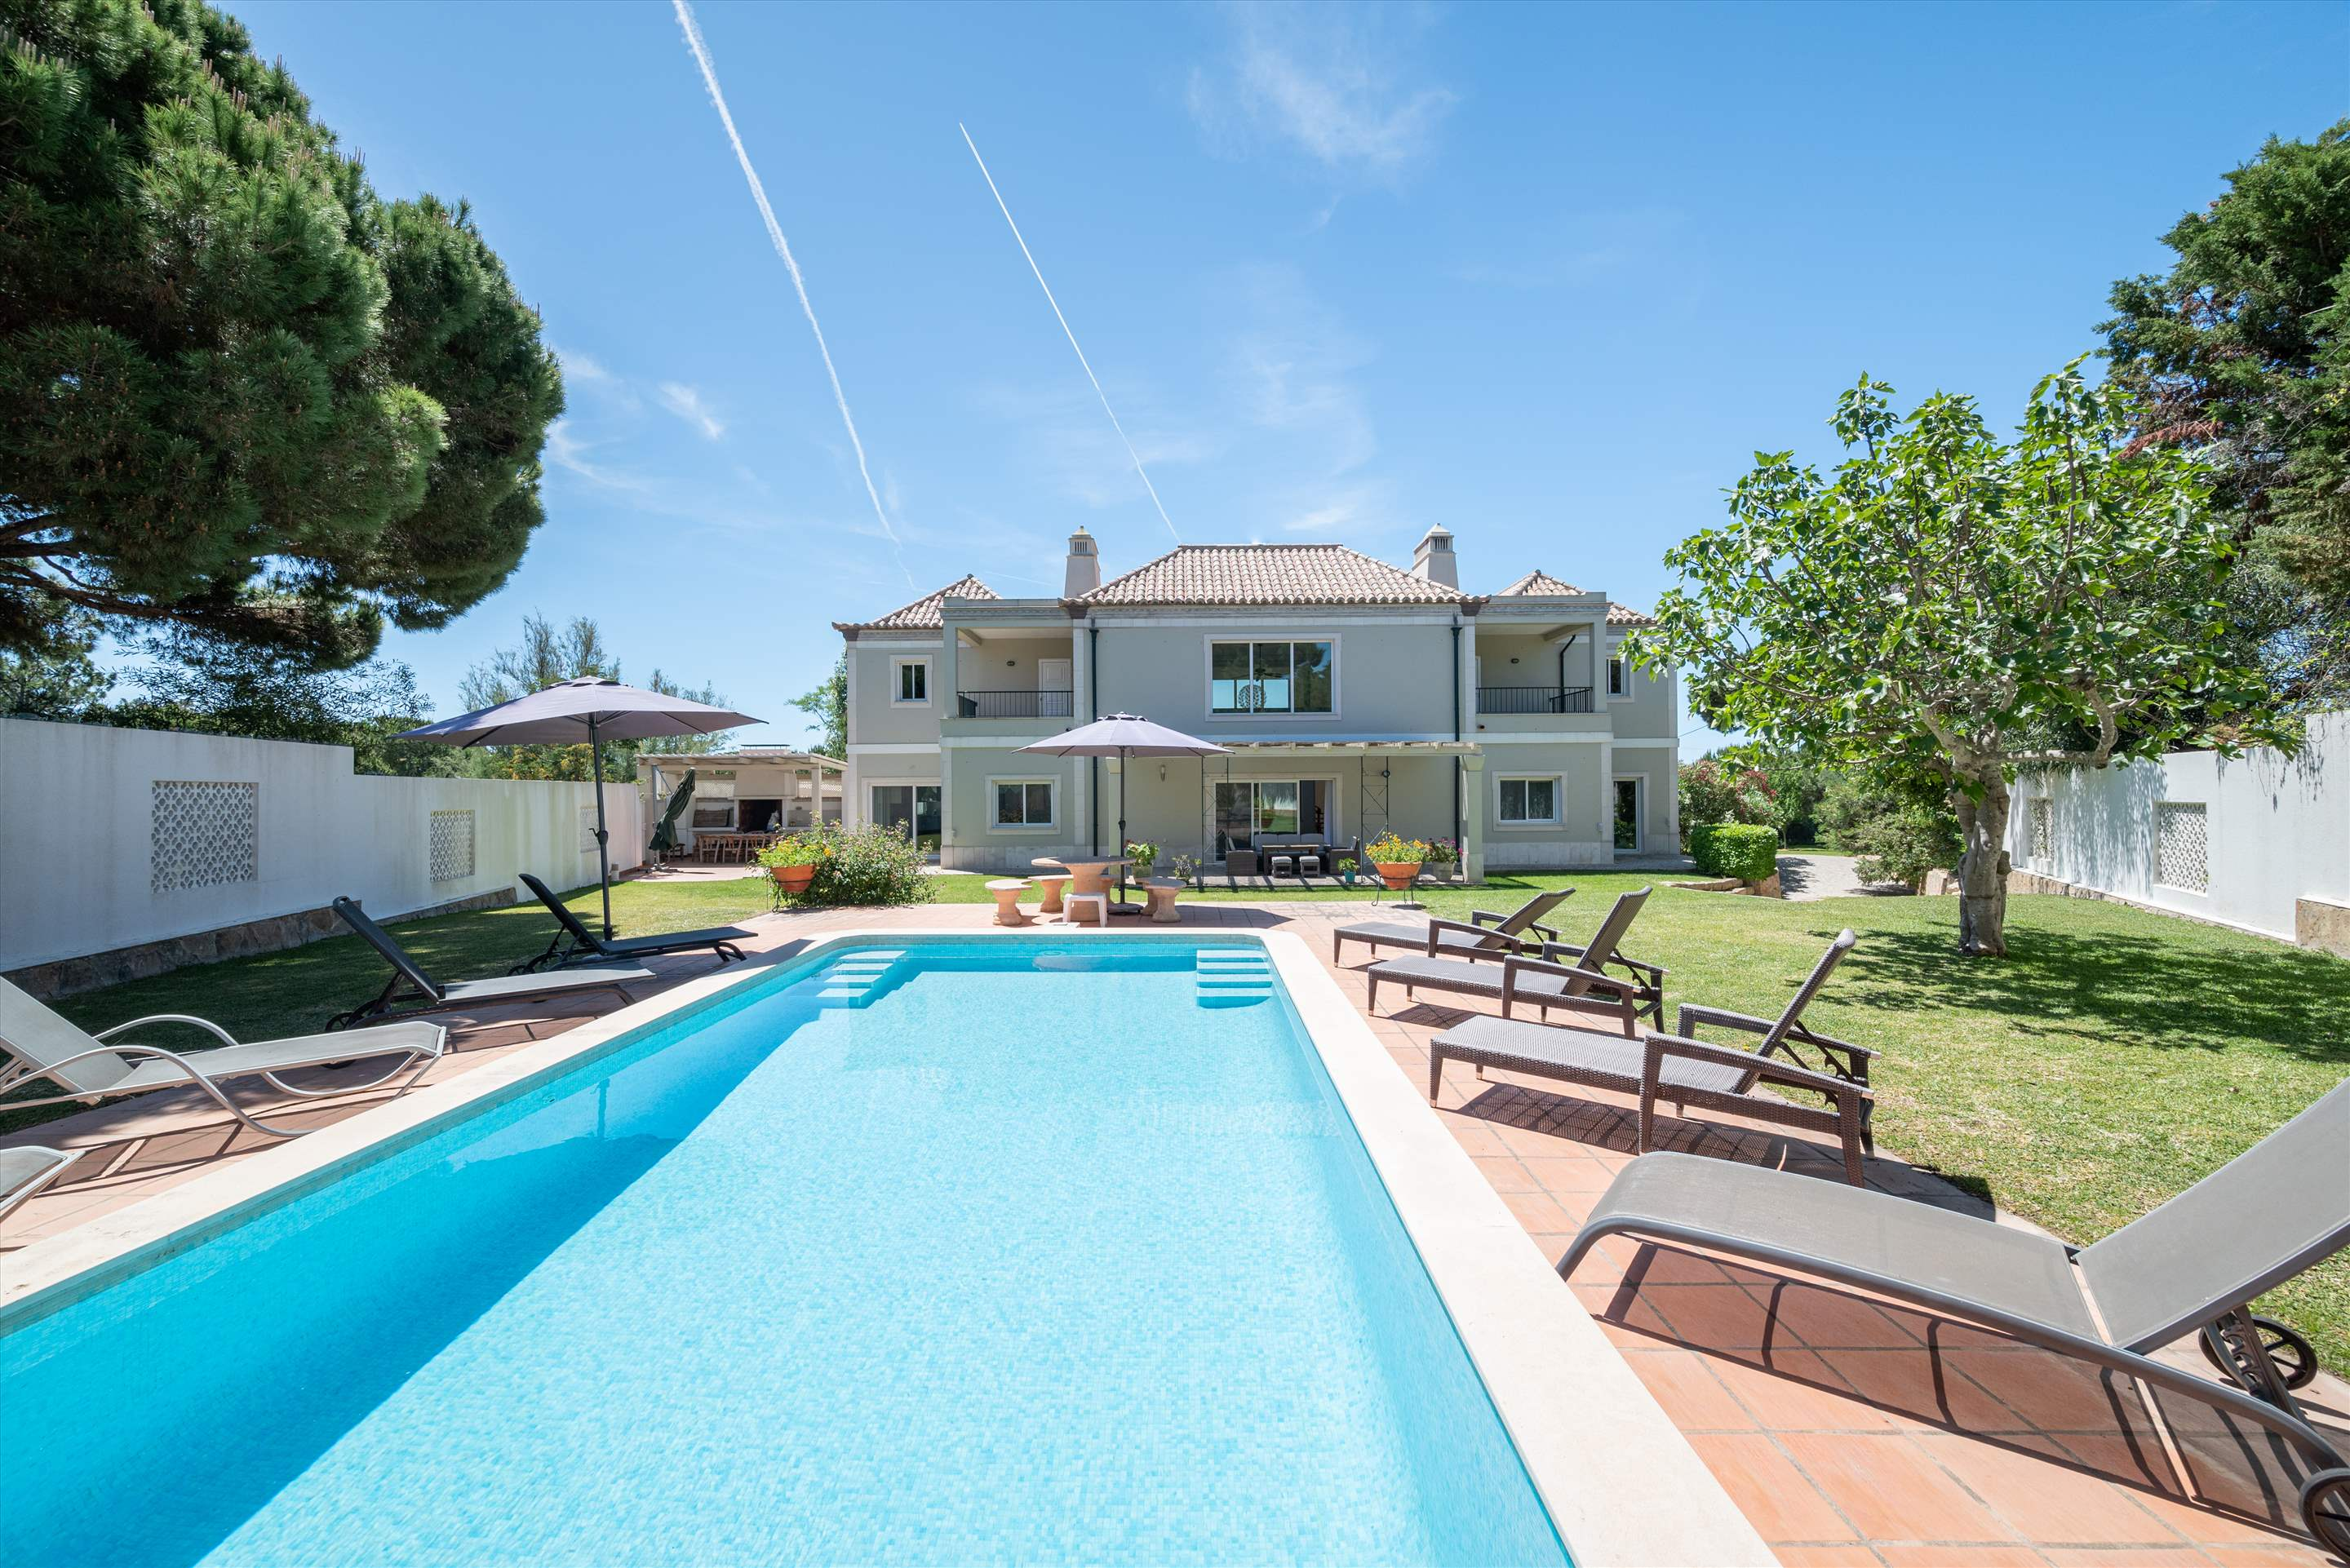 Quinta Pequena, 4 bedroom villa in Quinta do Lago, Algarve Photo #1